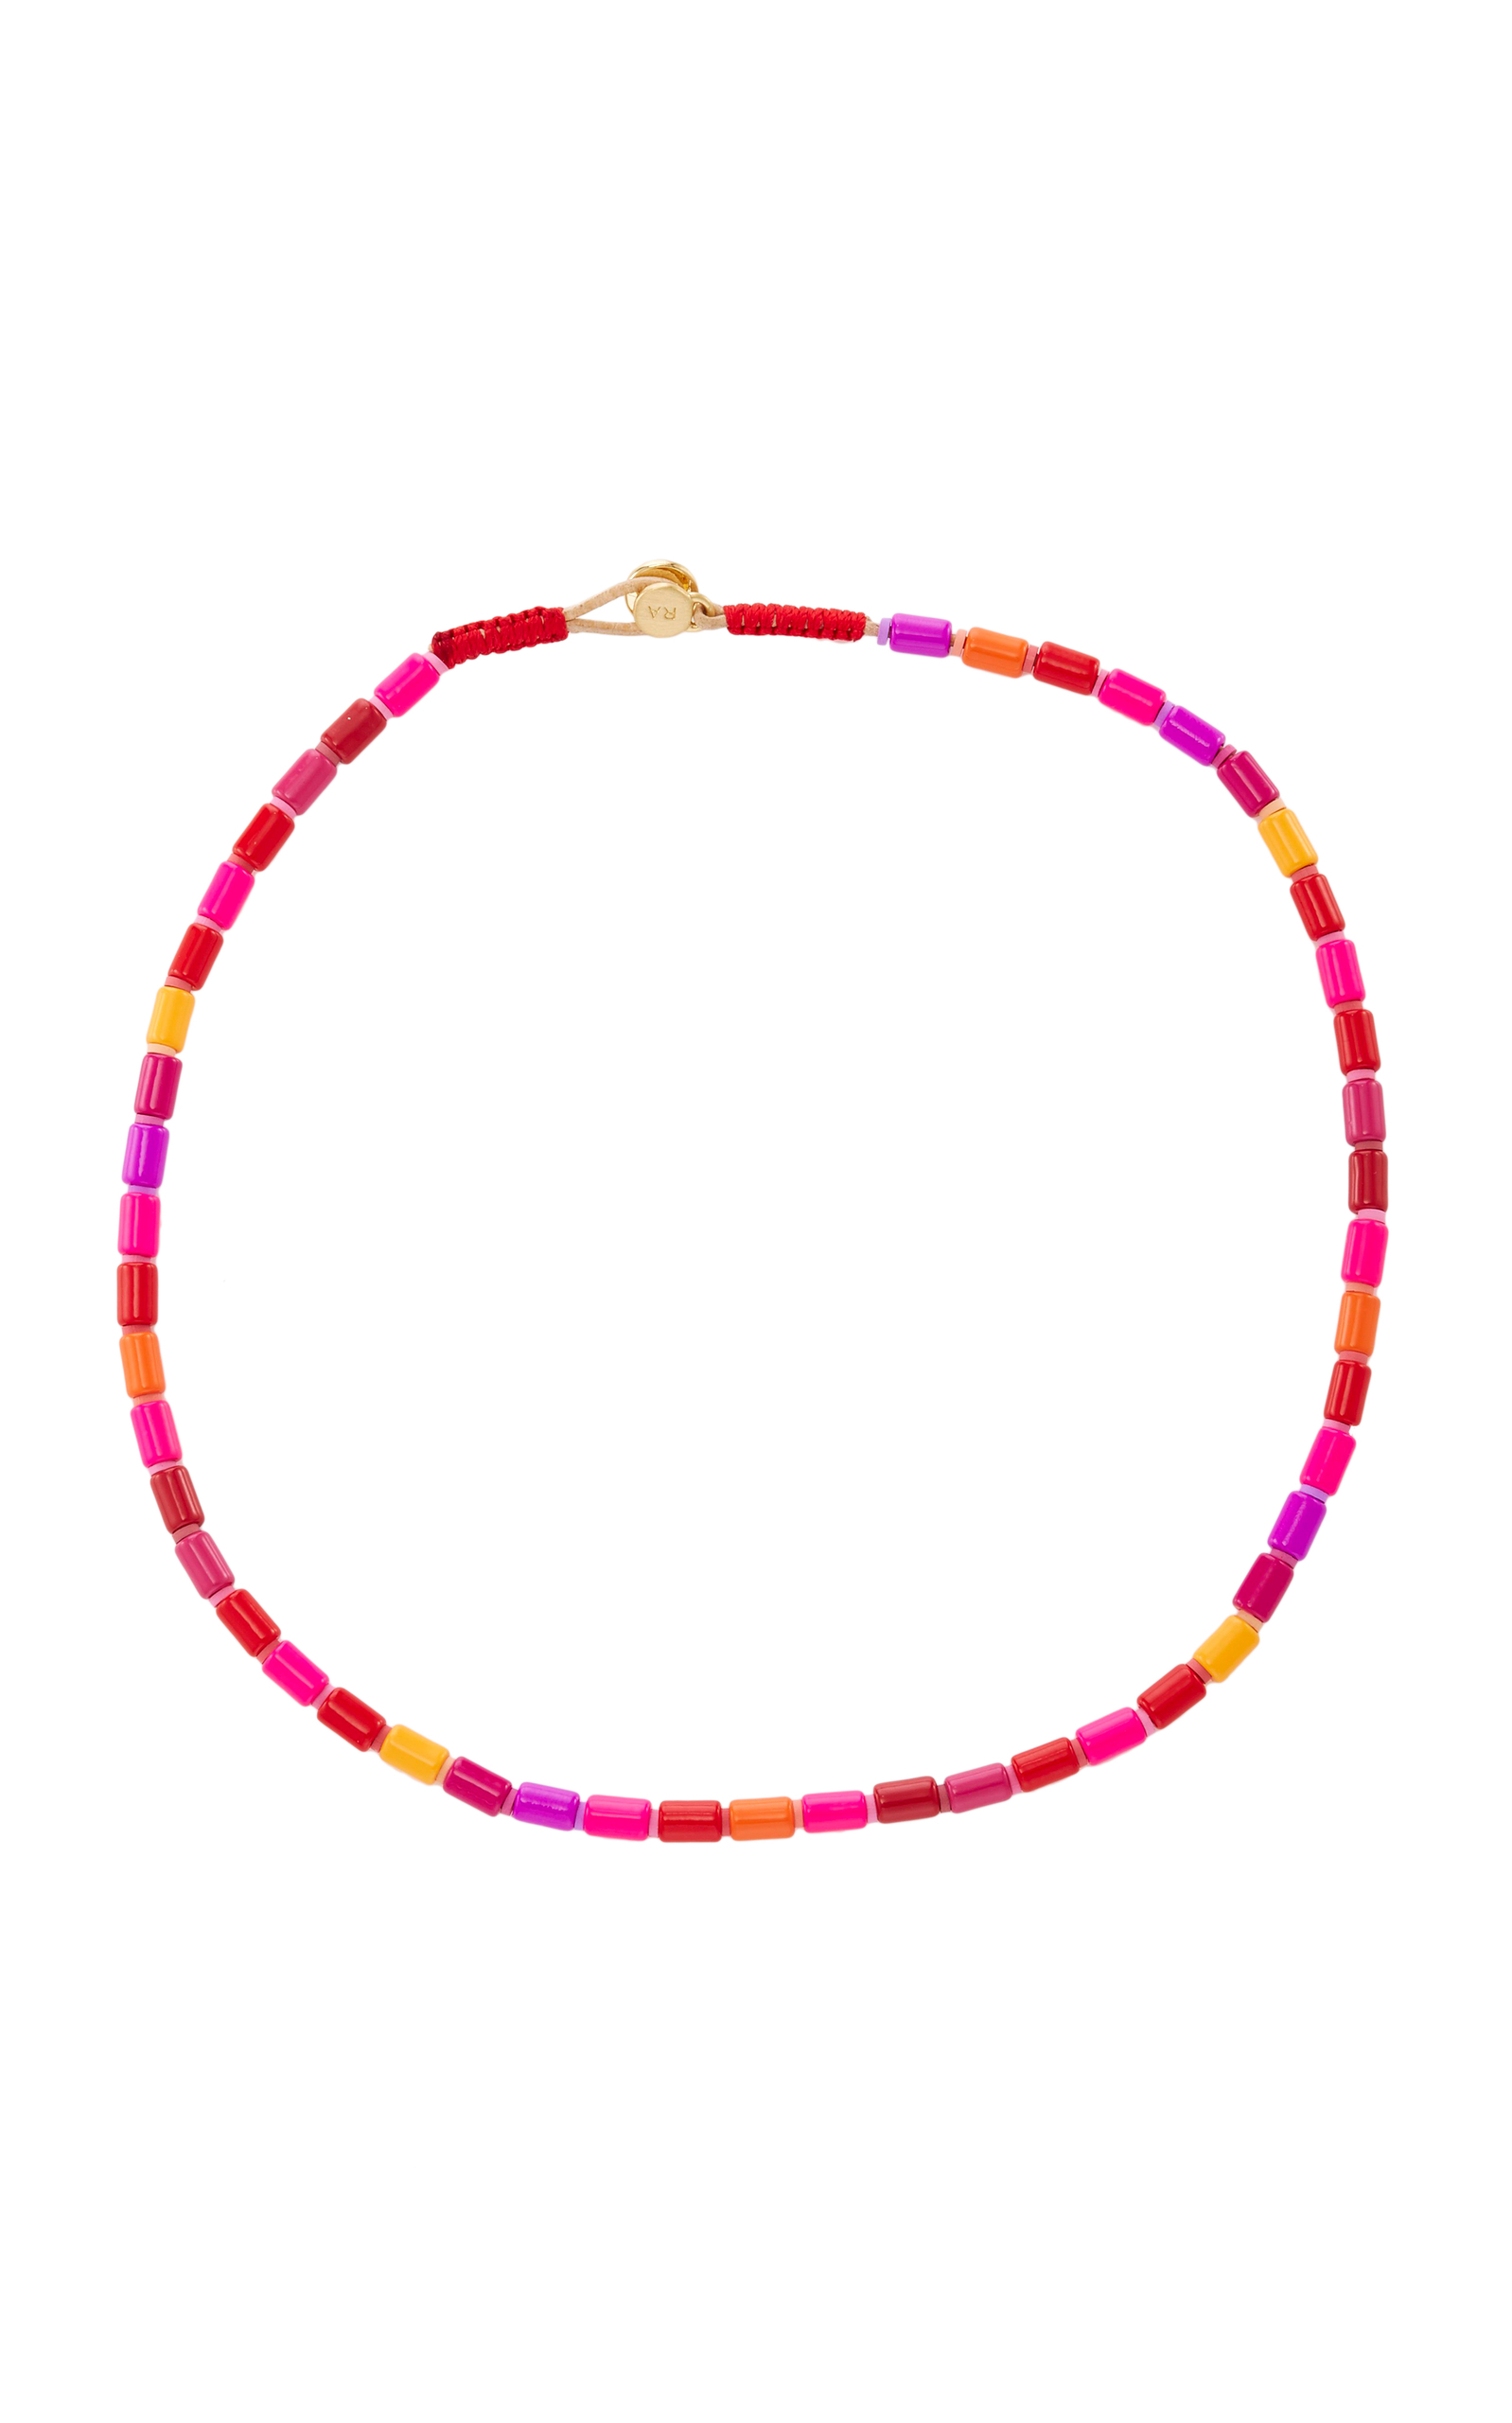 ROXANNE ASSOULIN EXTREMELY PINK U-TUBE NECKLACE